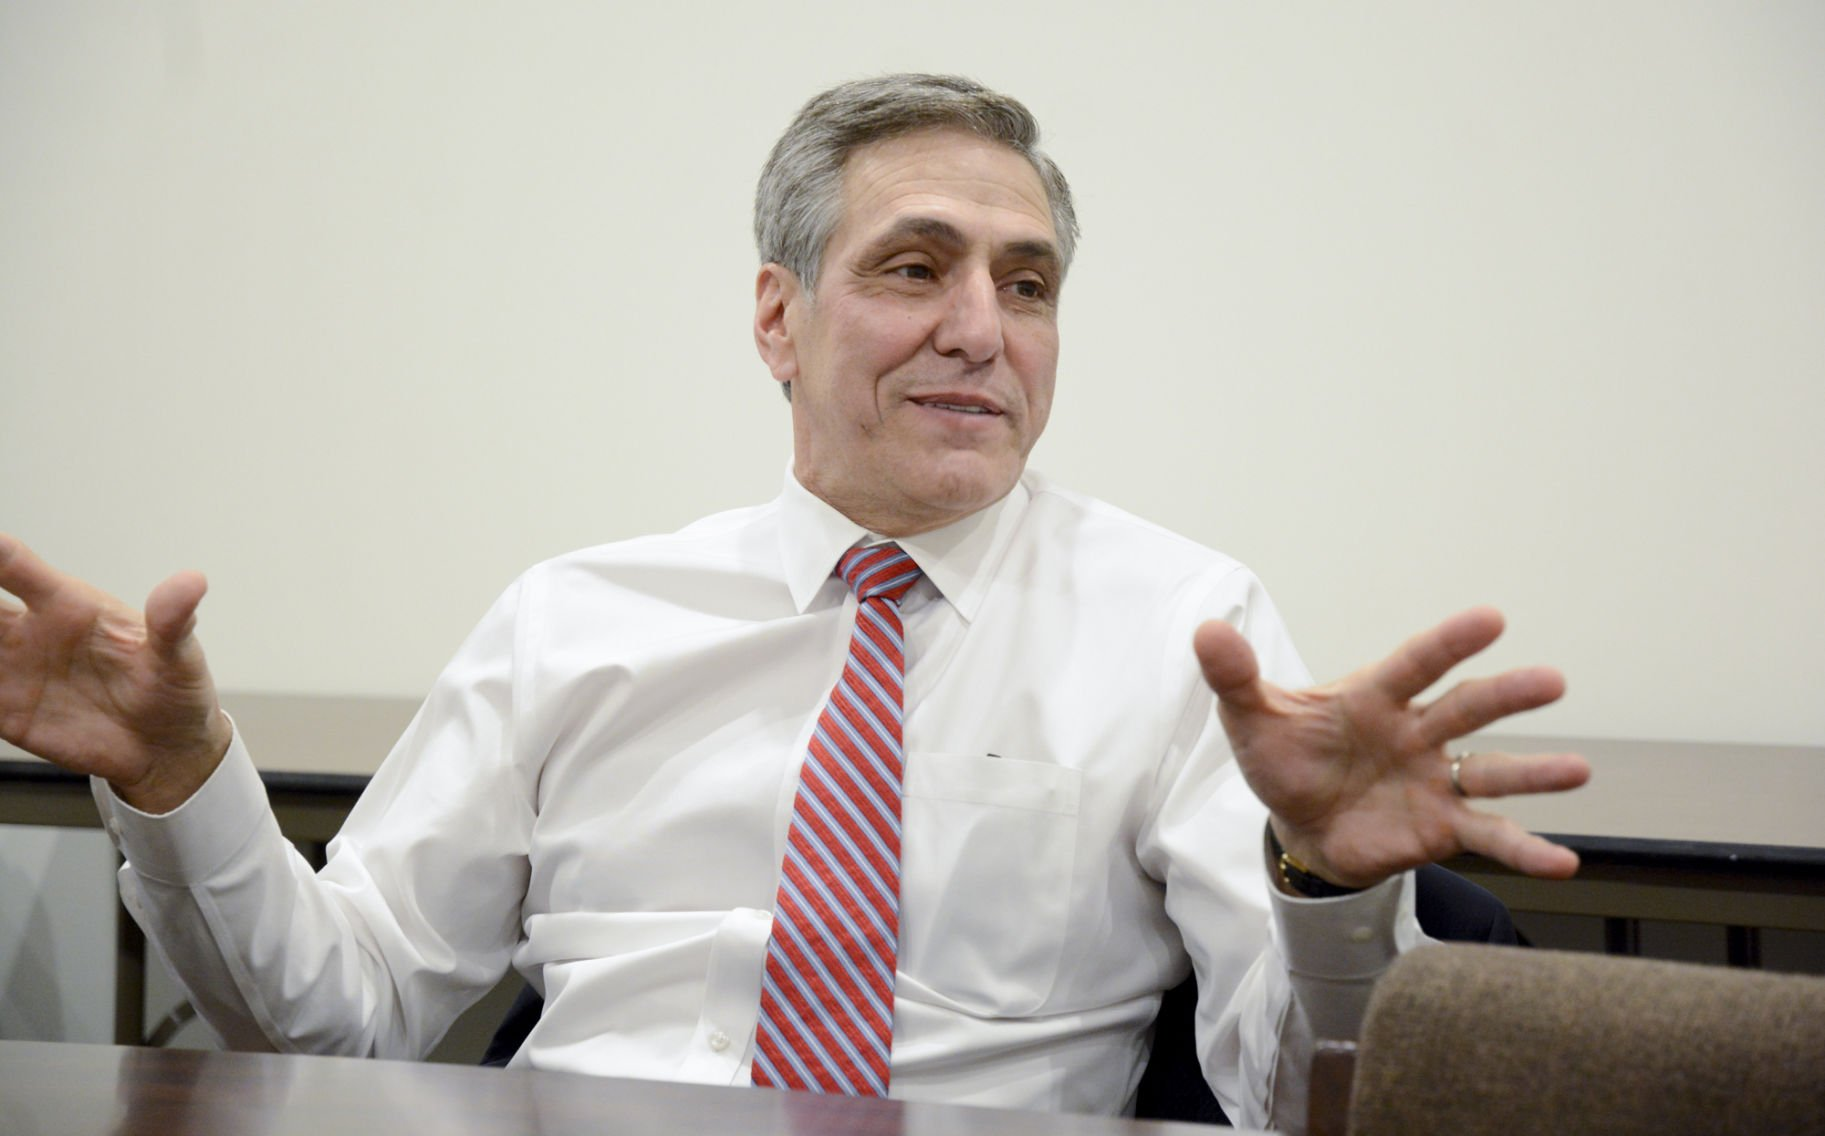 Pennsylvania Rep. Barletta set for Senate run against Casey